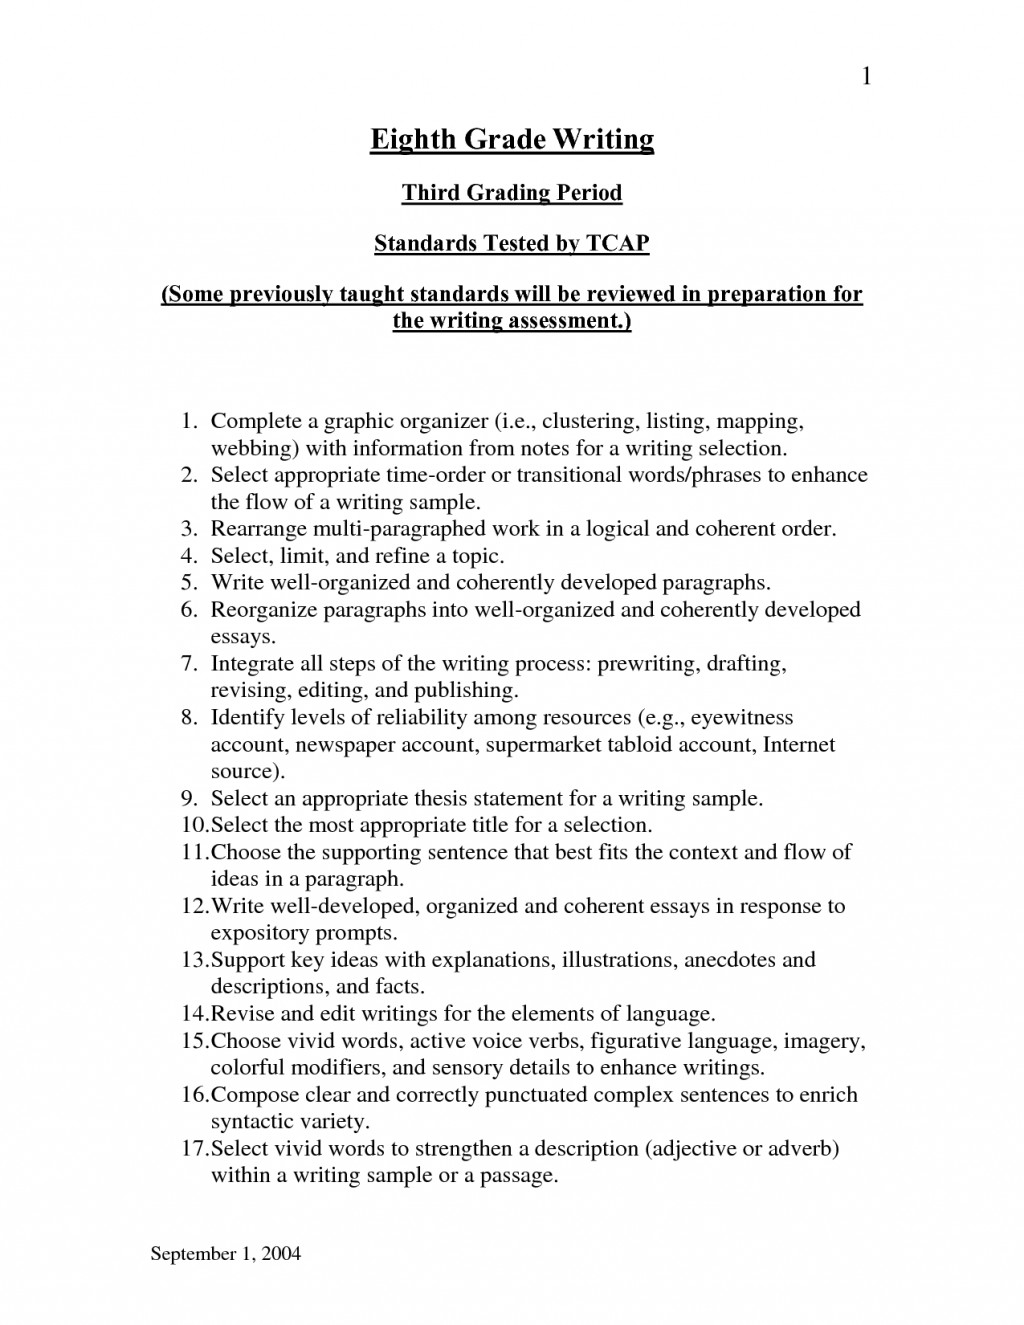 004 Expository Essay Ideas Example Writing Prompts For High School 1088622 Incredible Good Prompt Large